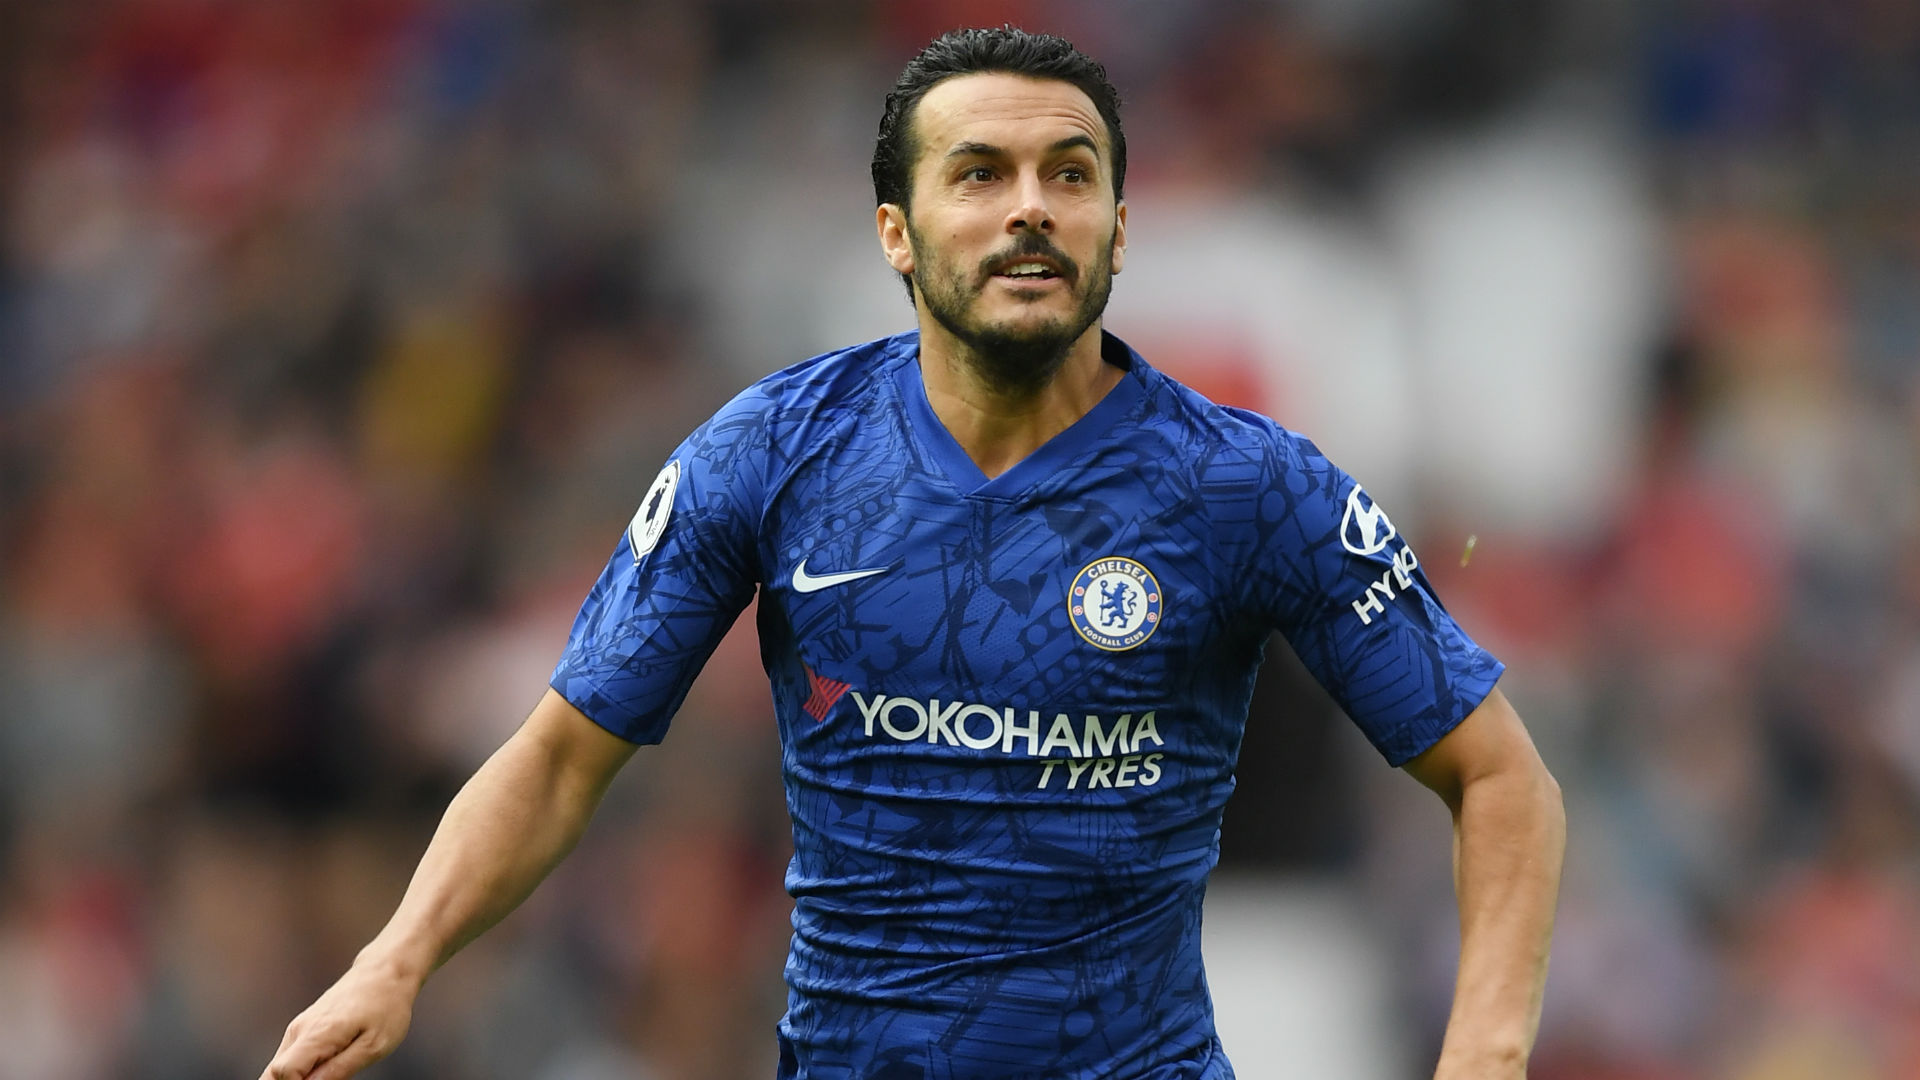 Pedro Chelsea Manchester United Premier League 2019